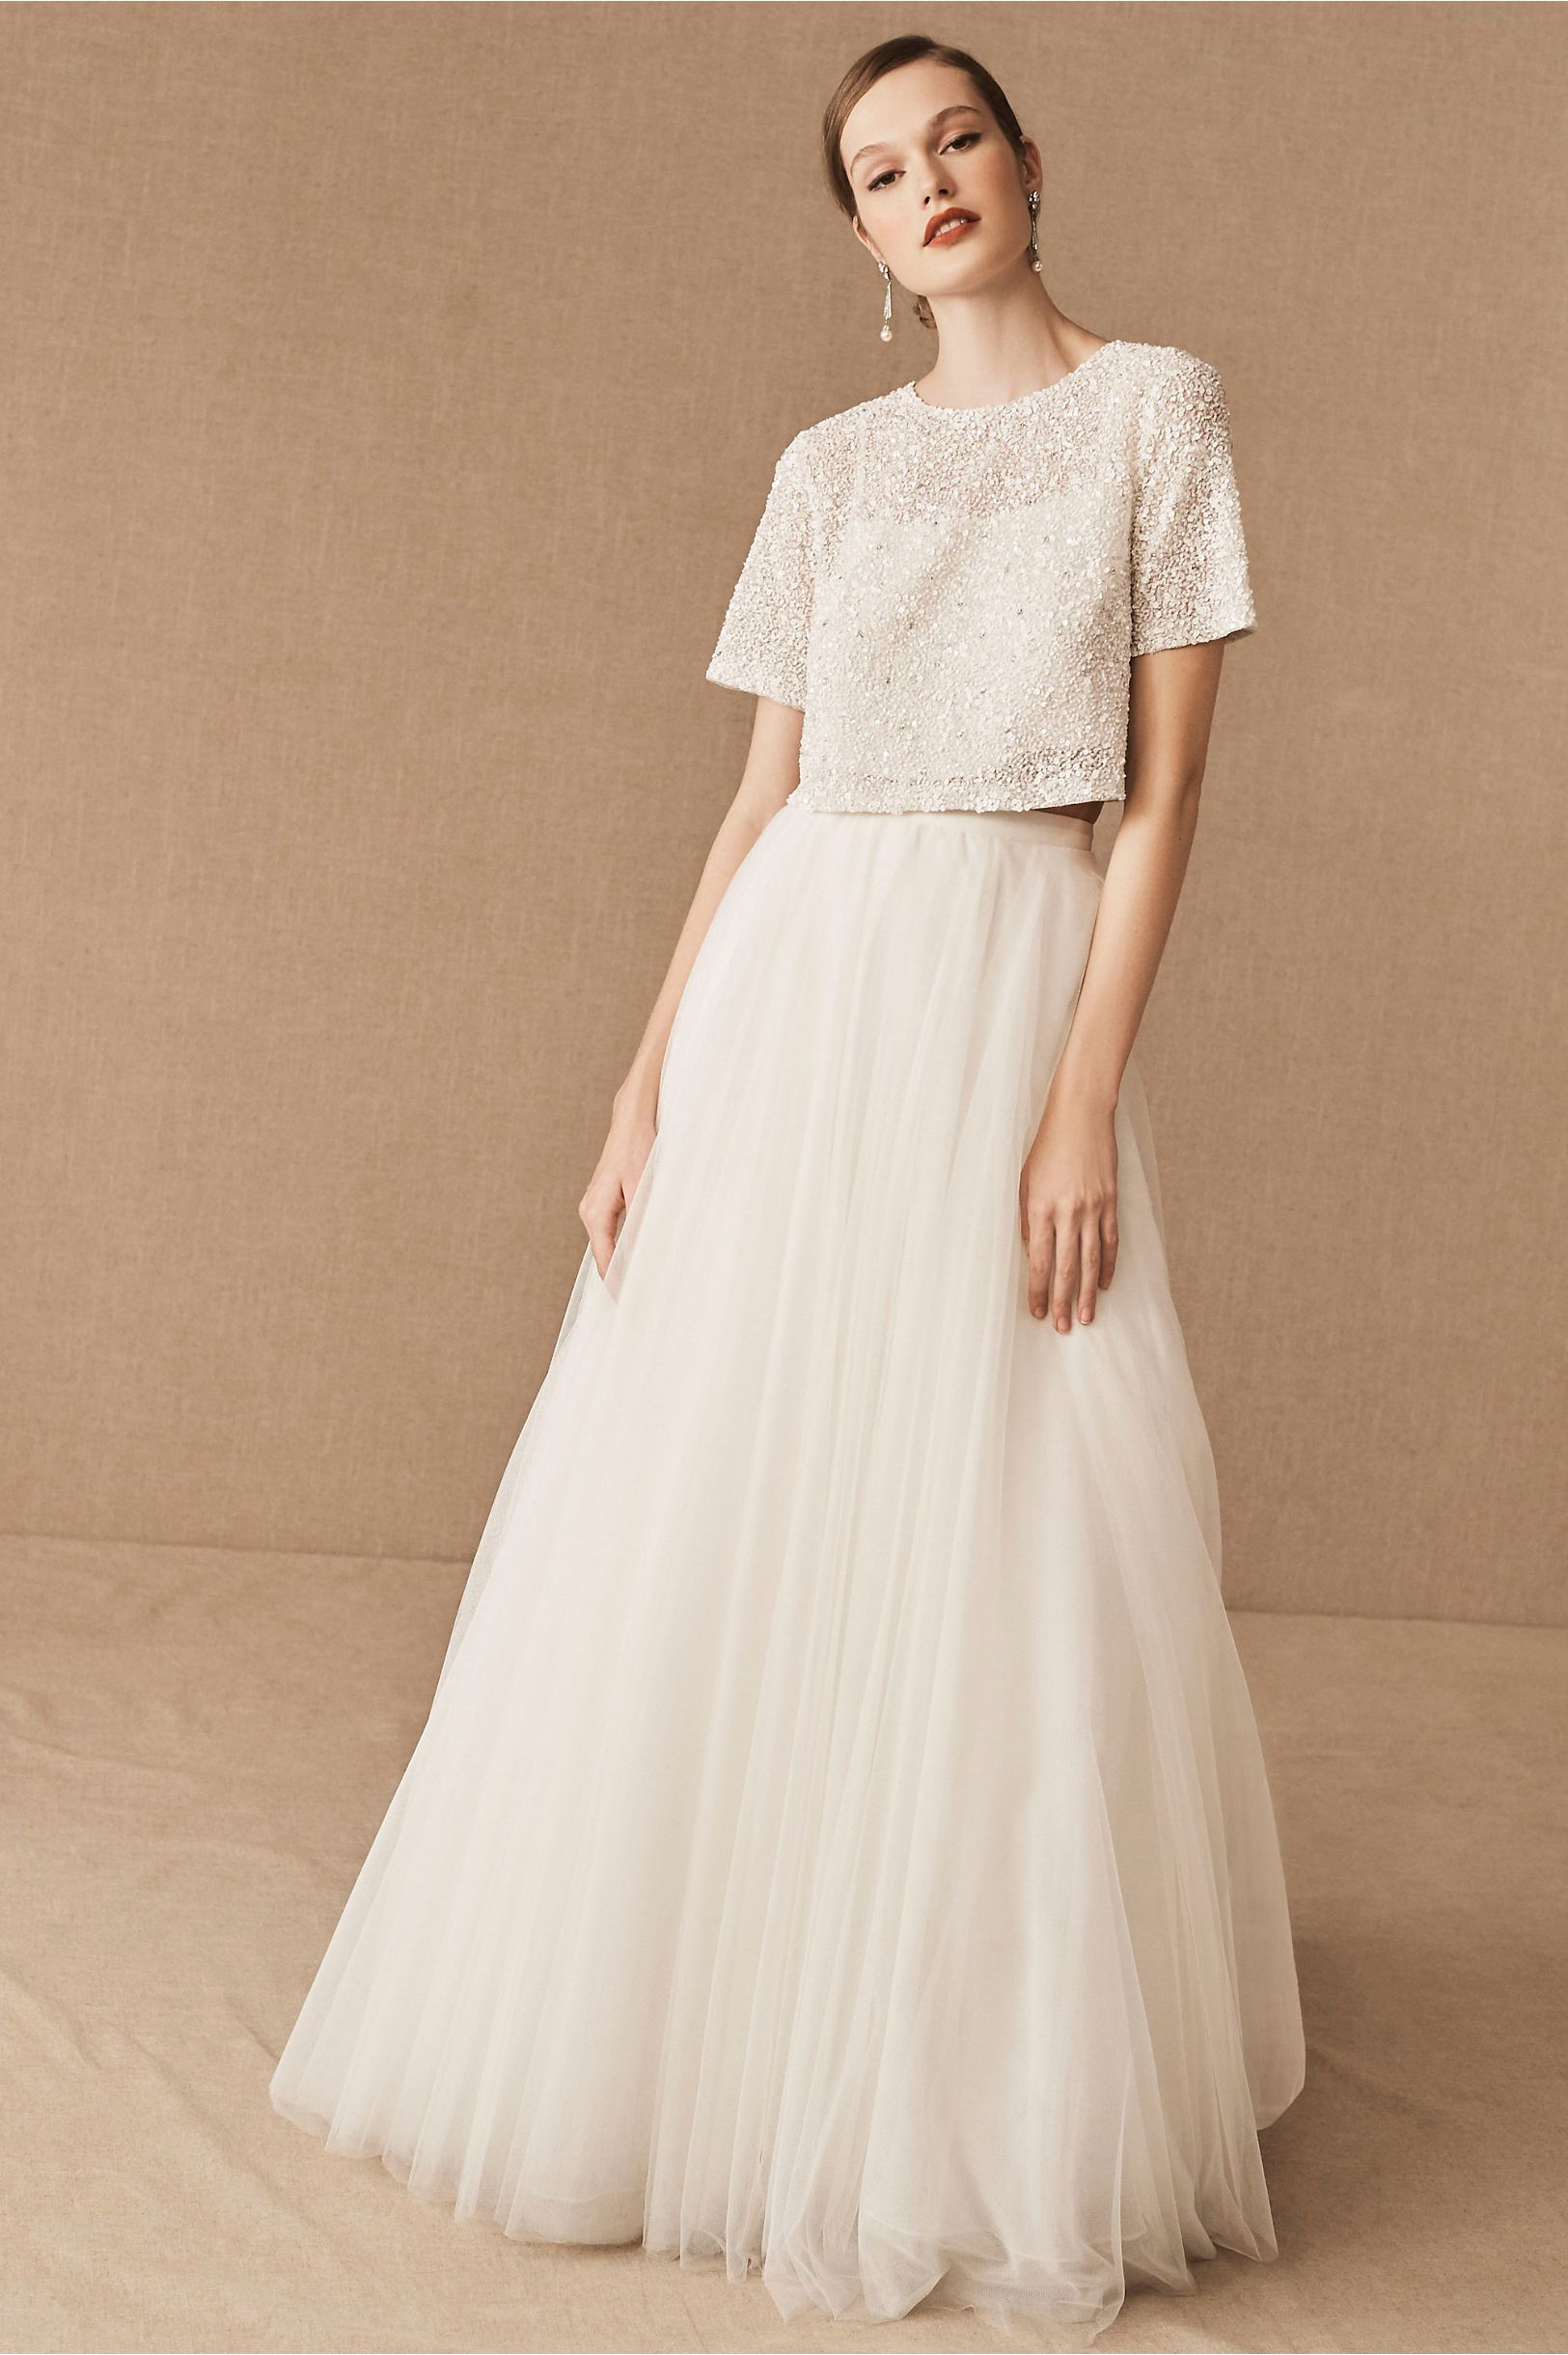 Bhldn Shayla Topper In 2020 Bhldn Bhldn Wedding Dress Bridal Separates